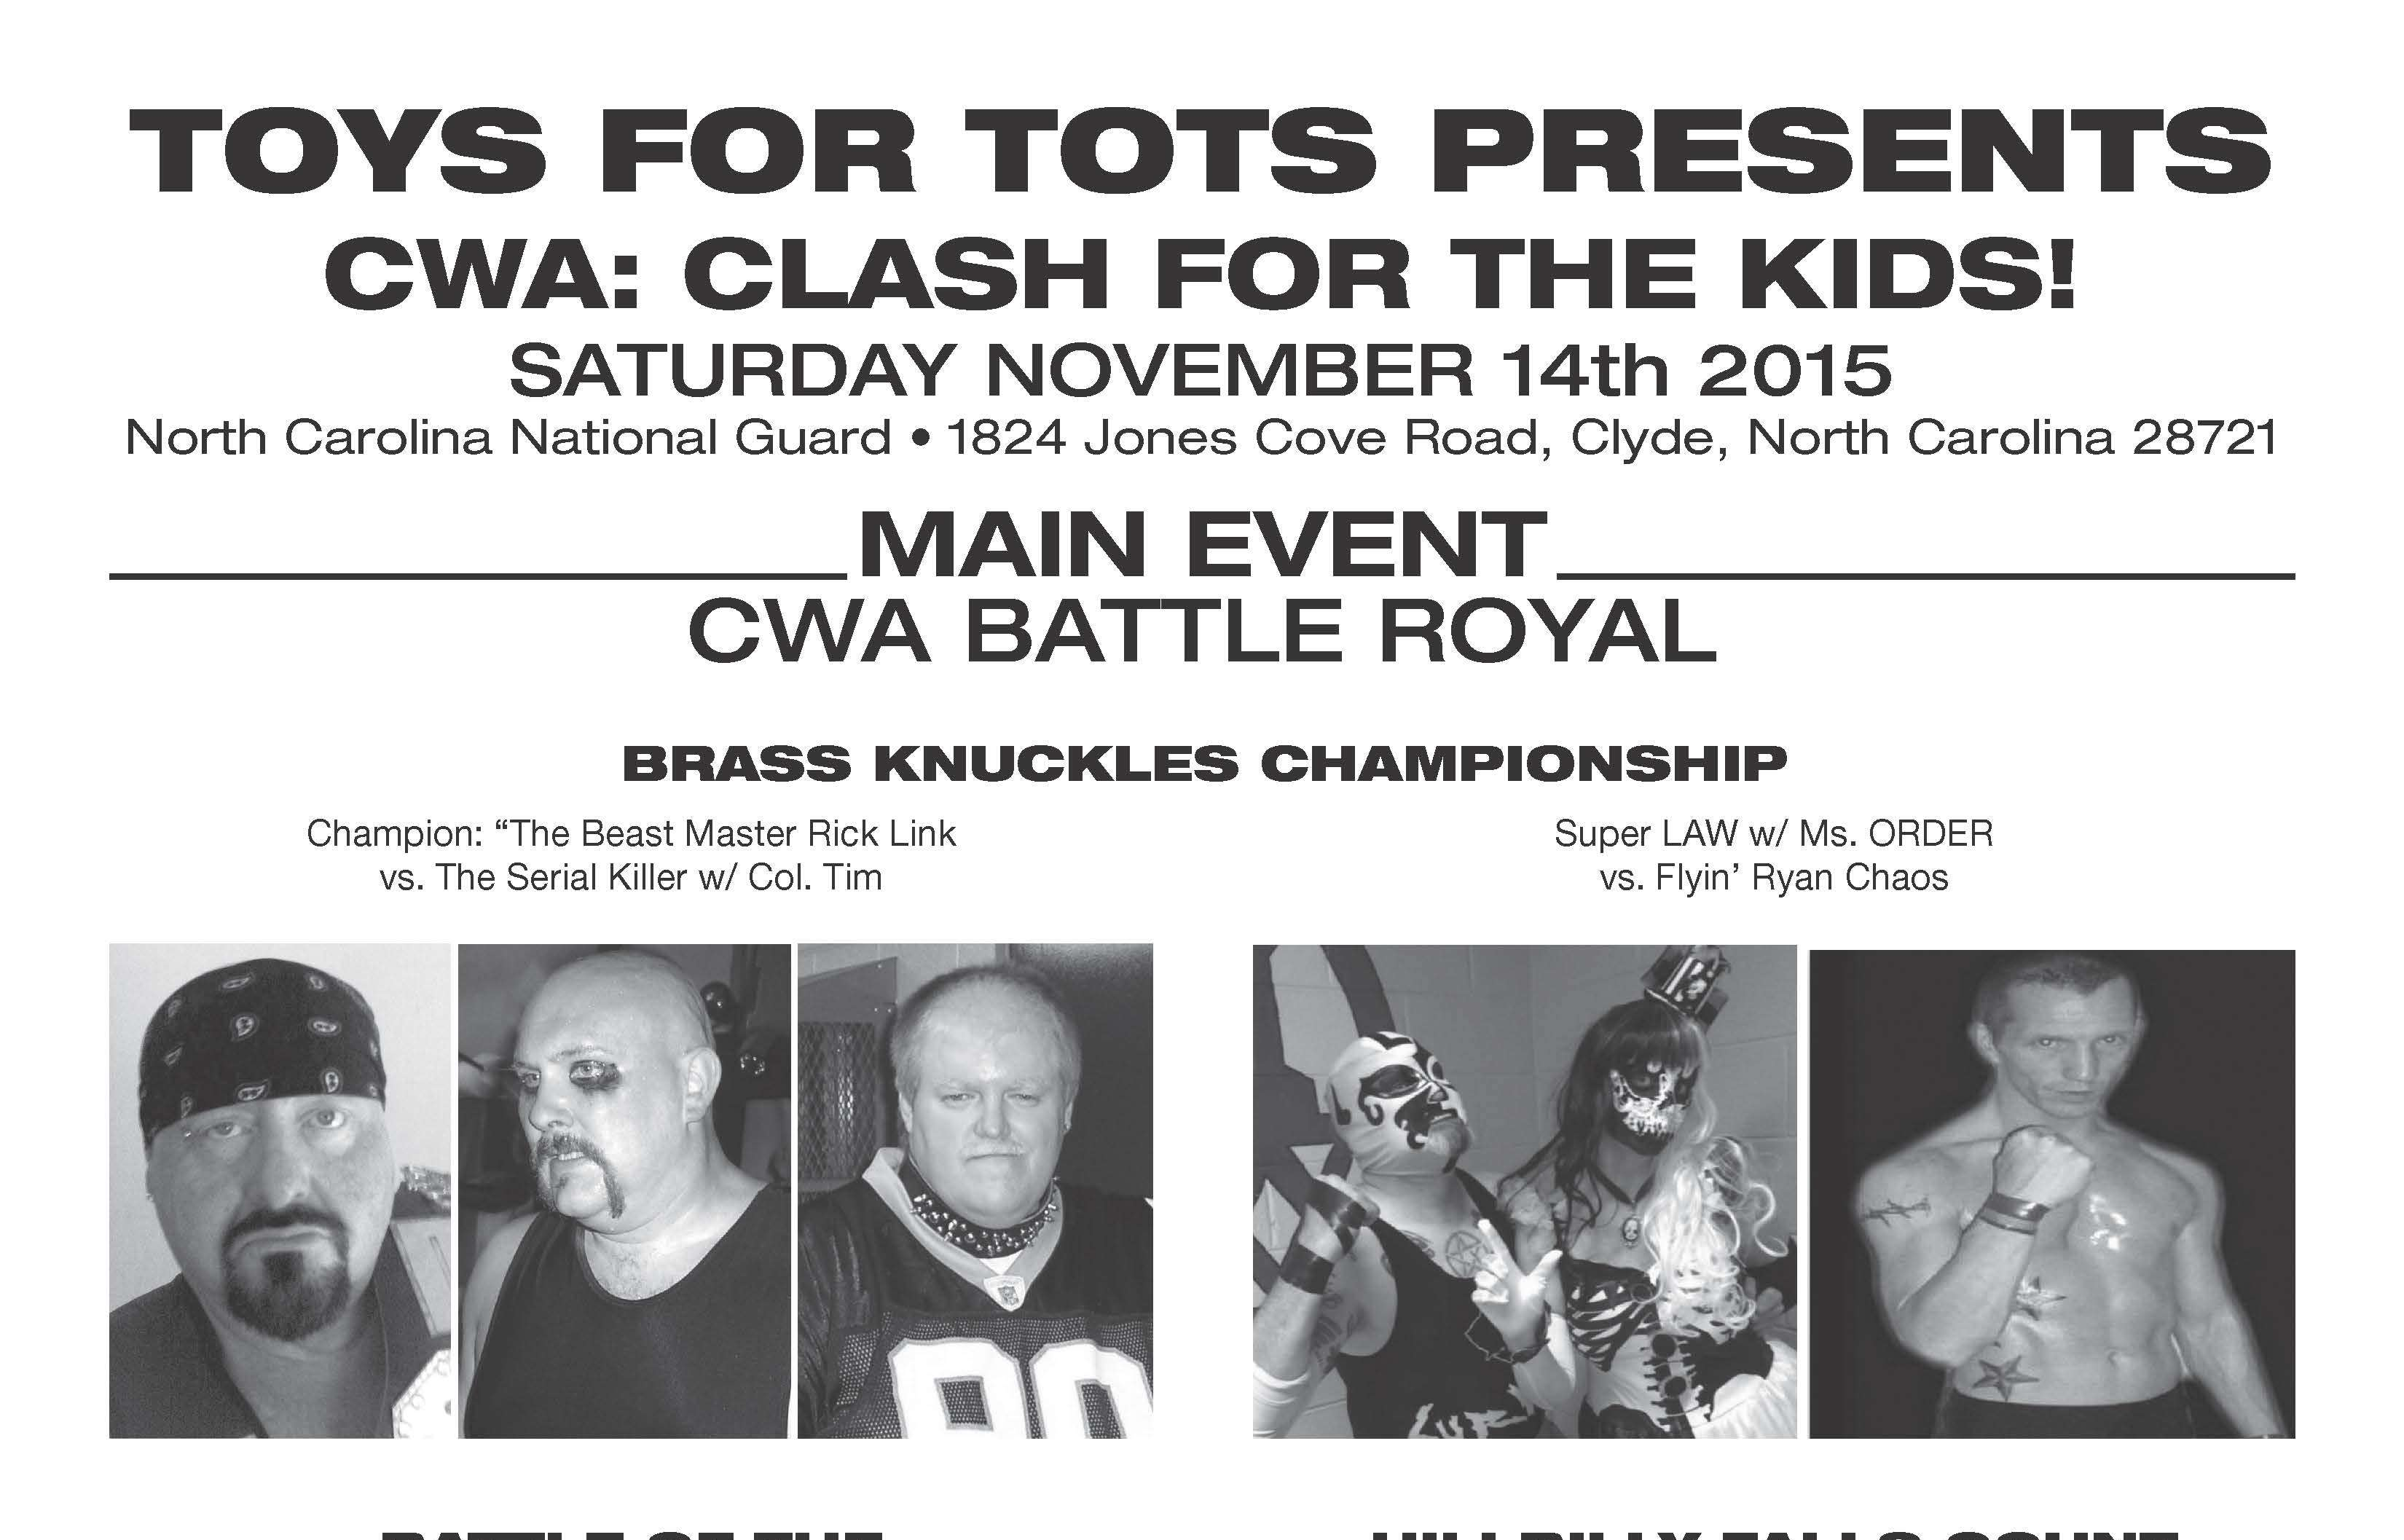 """Toys For Tots Promotional Posters : """"toys for tots cwa press release online world of wrestling"""